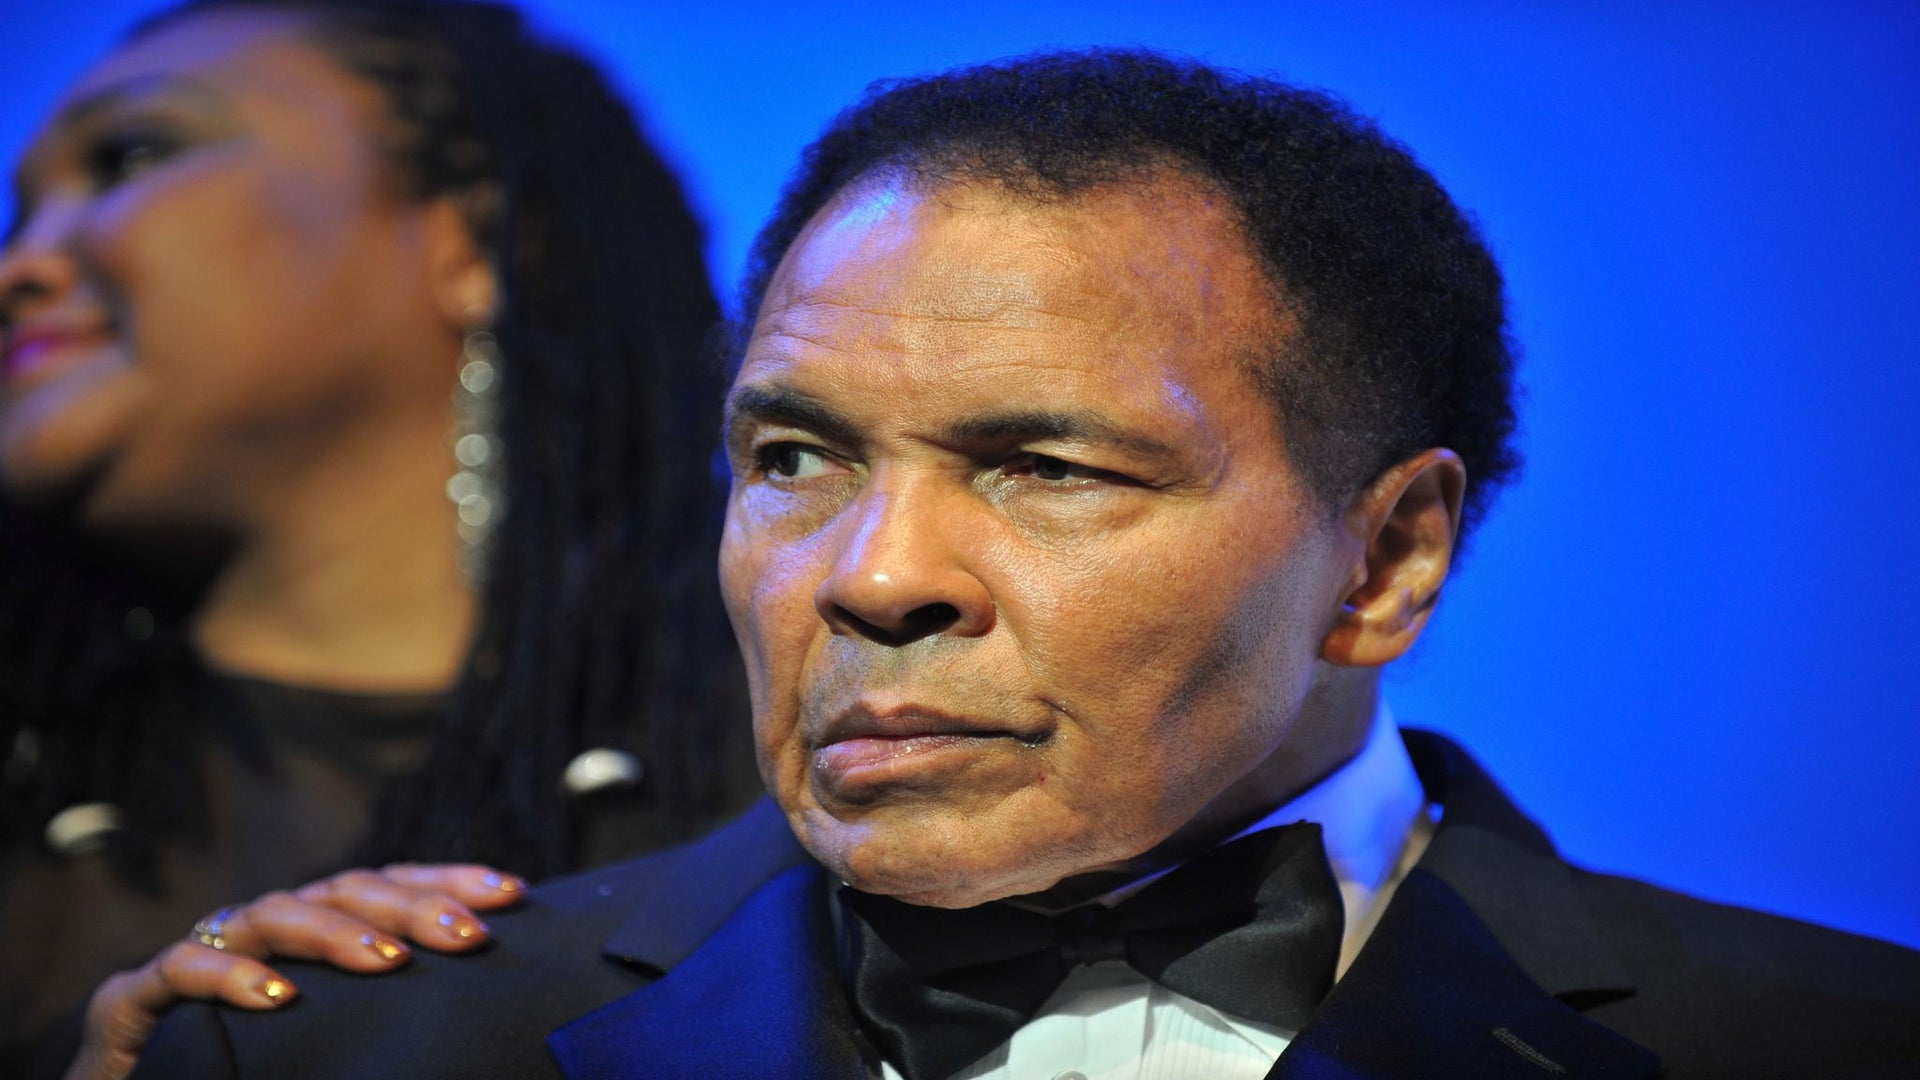 Muhammad Ali's Funeral Will Be Held Friday